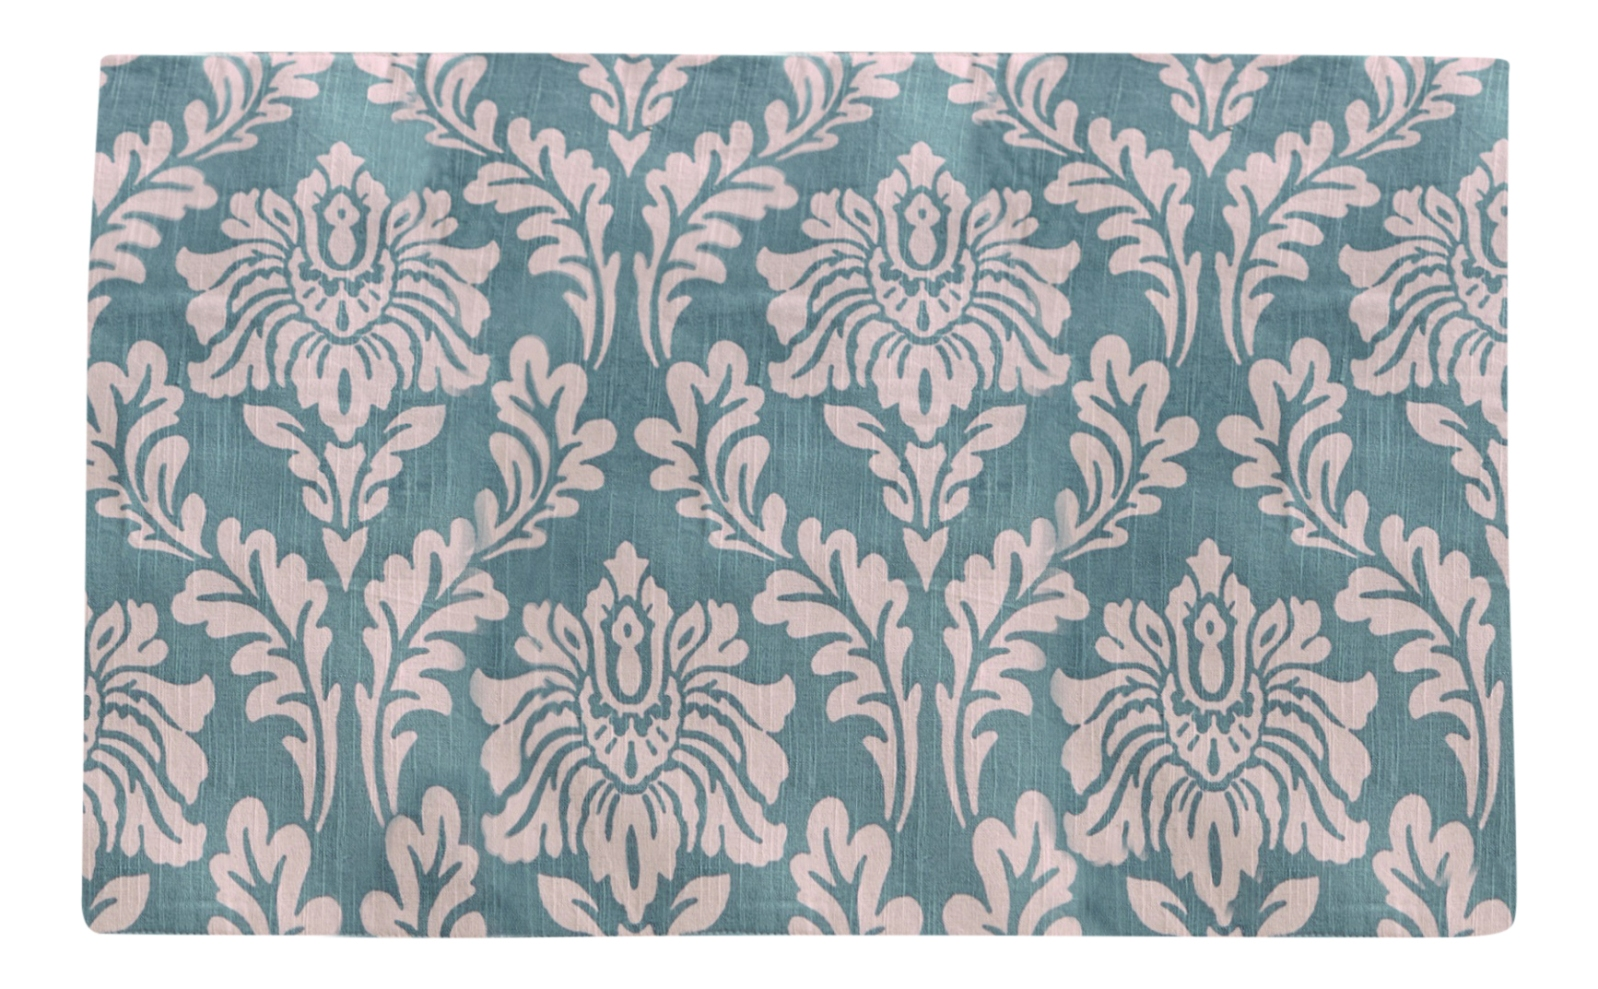 Margaux Damask GEO Dining Room Placemats Teal Blue Print  : 28060011 from www.ebay.ca size 1598 x 989 jpeg 856kB